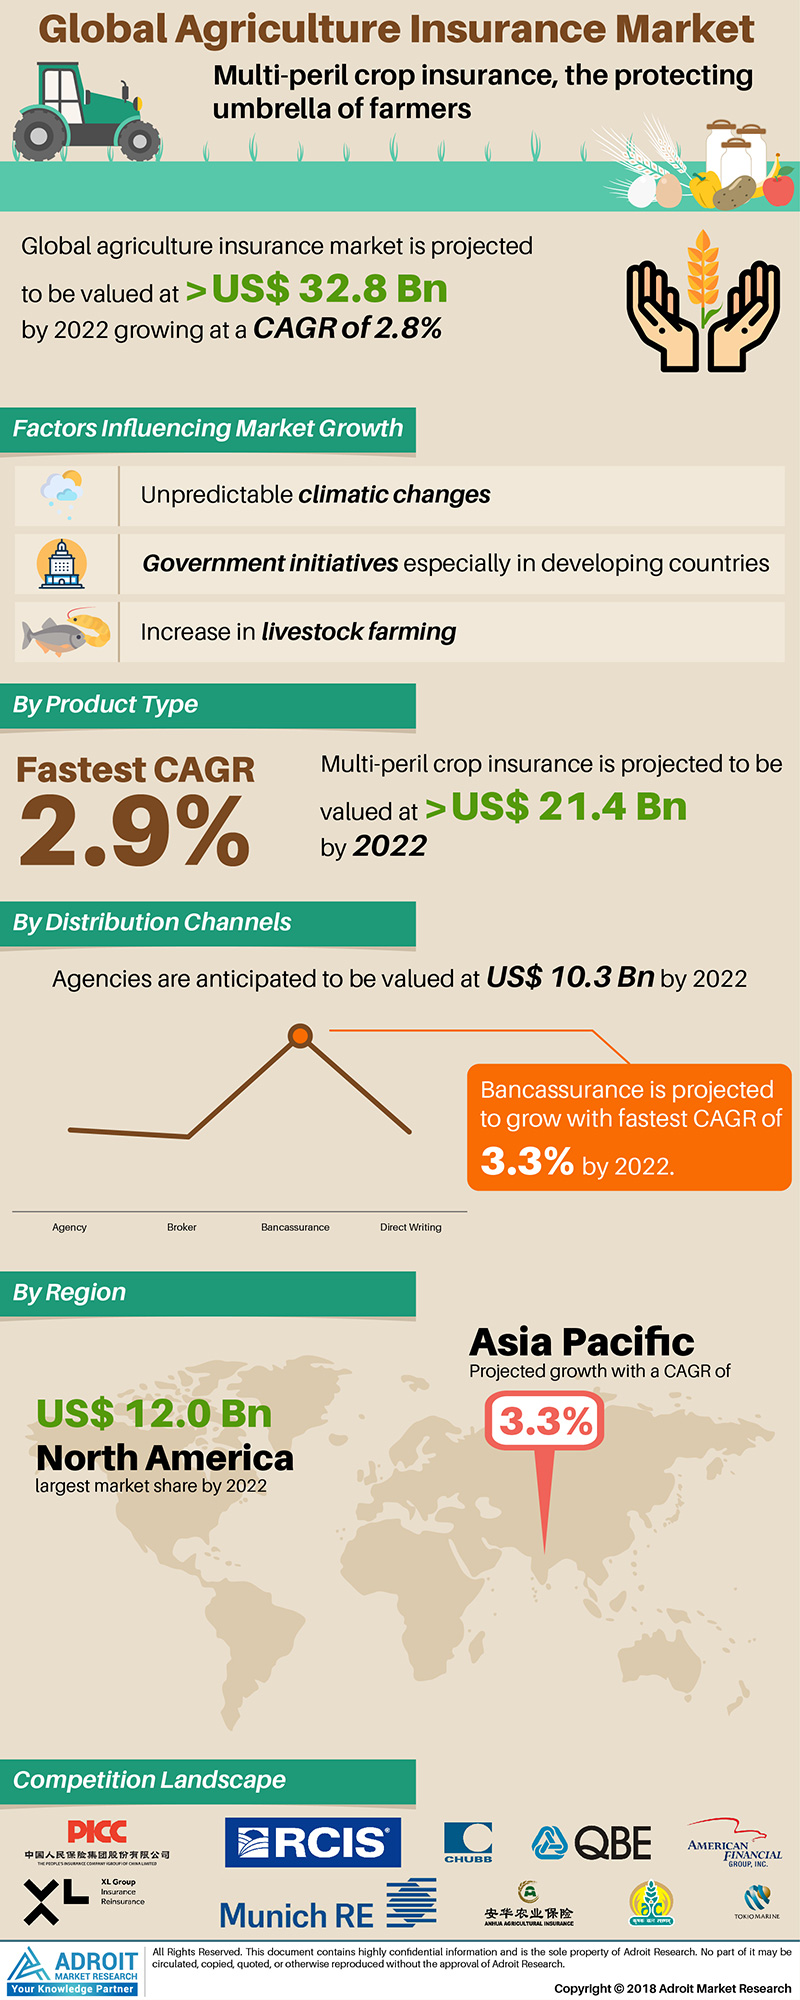 Global Agricultural Insurance Market Size 2016 by Treatment Type (Cosmetic, Dental, Cardiovascular, Orthopedics, Bariatric, Fertility, Eye and General Treatment), by Region and Forecast 2017 to 2022